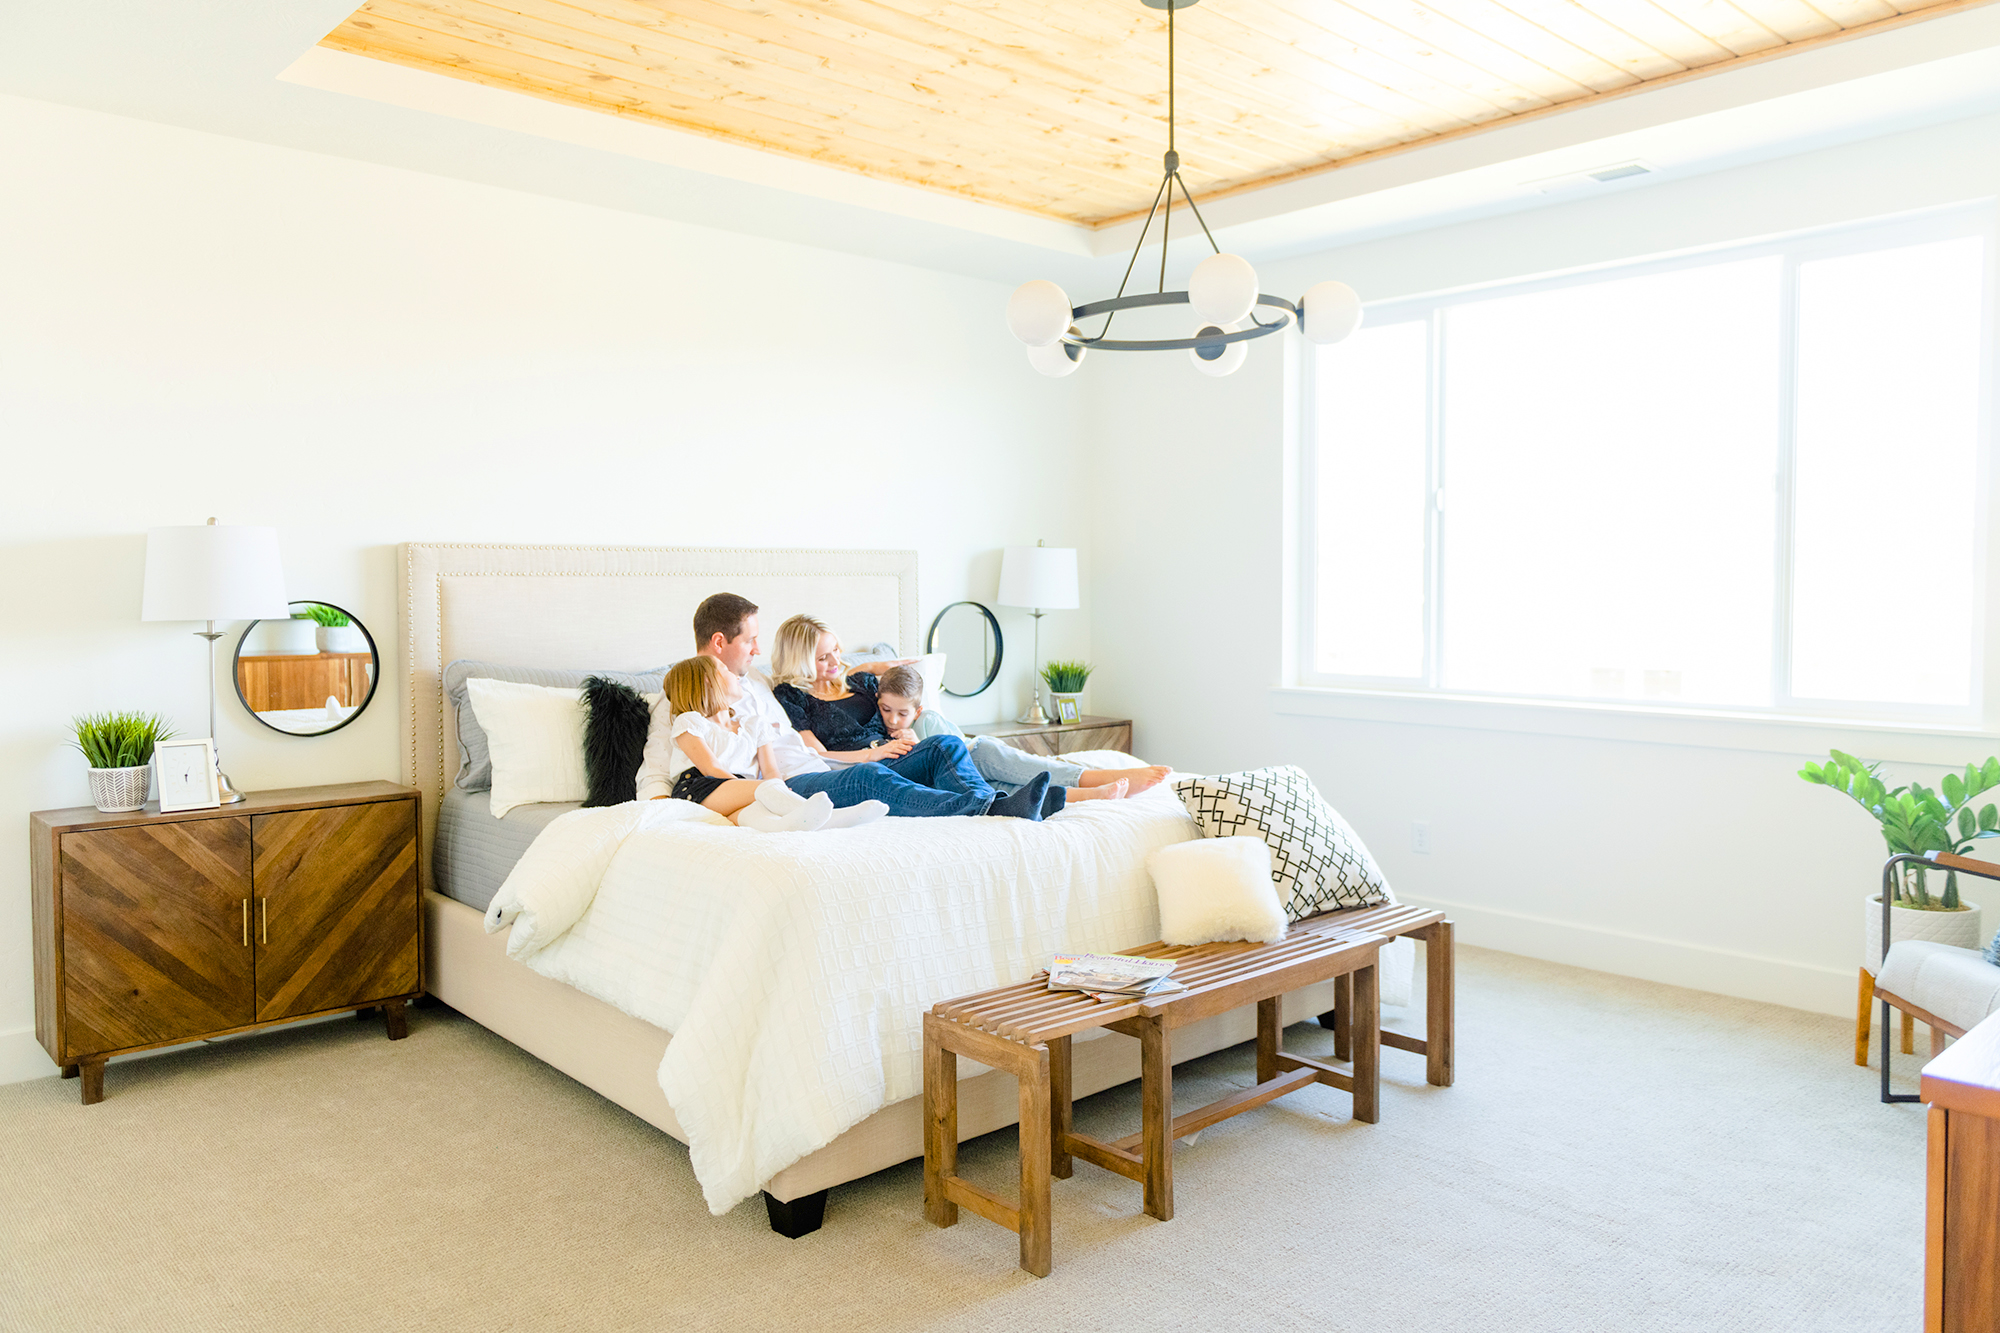 Berkeley Building Co. Contact Us hero image of family relaxing in bed together.